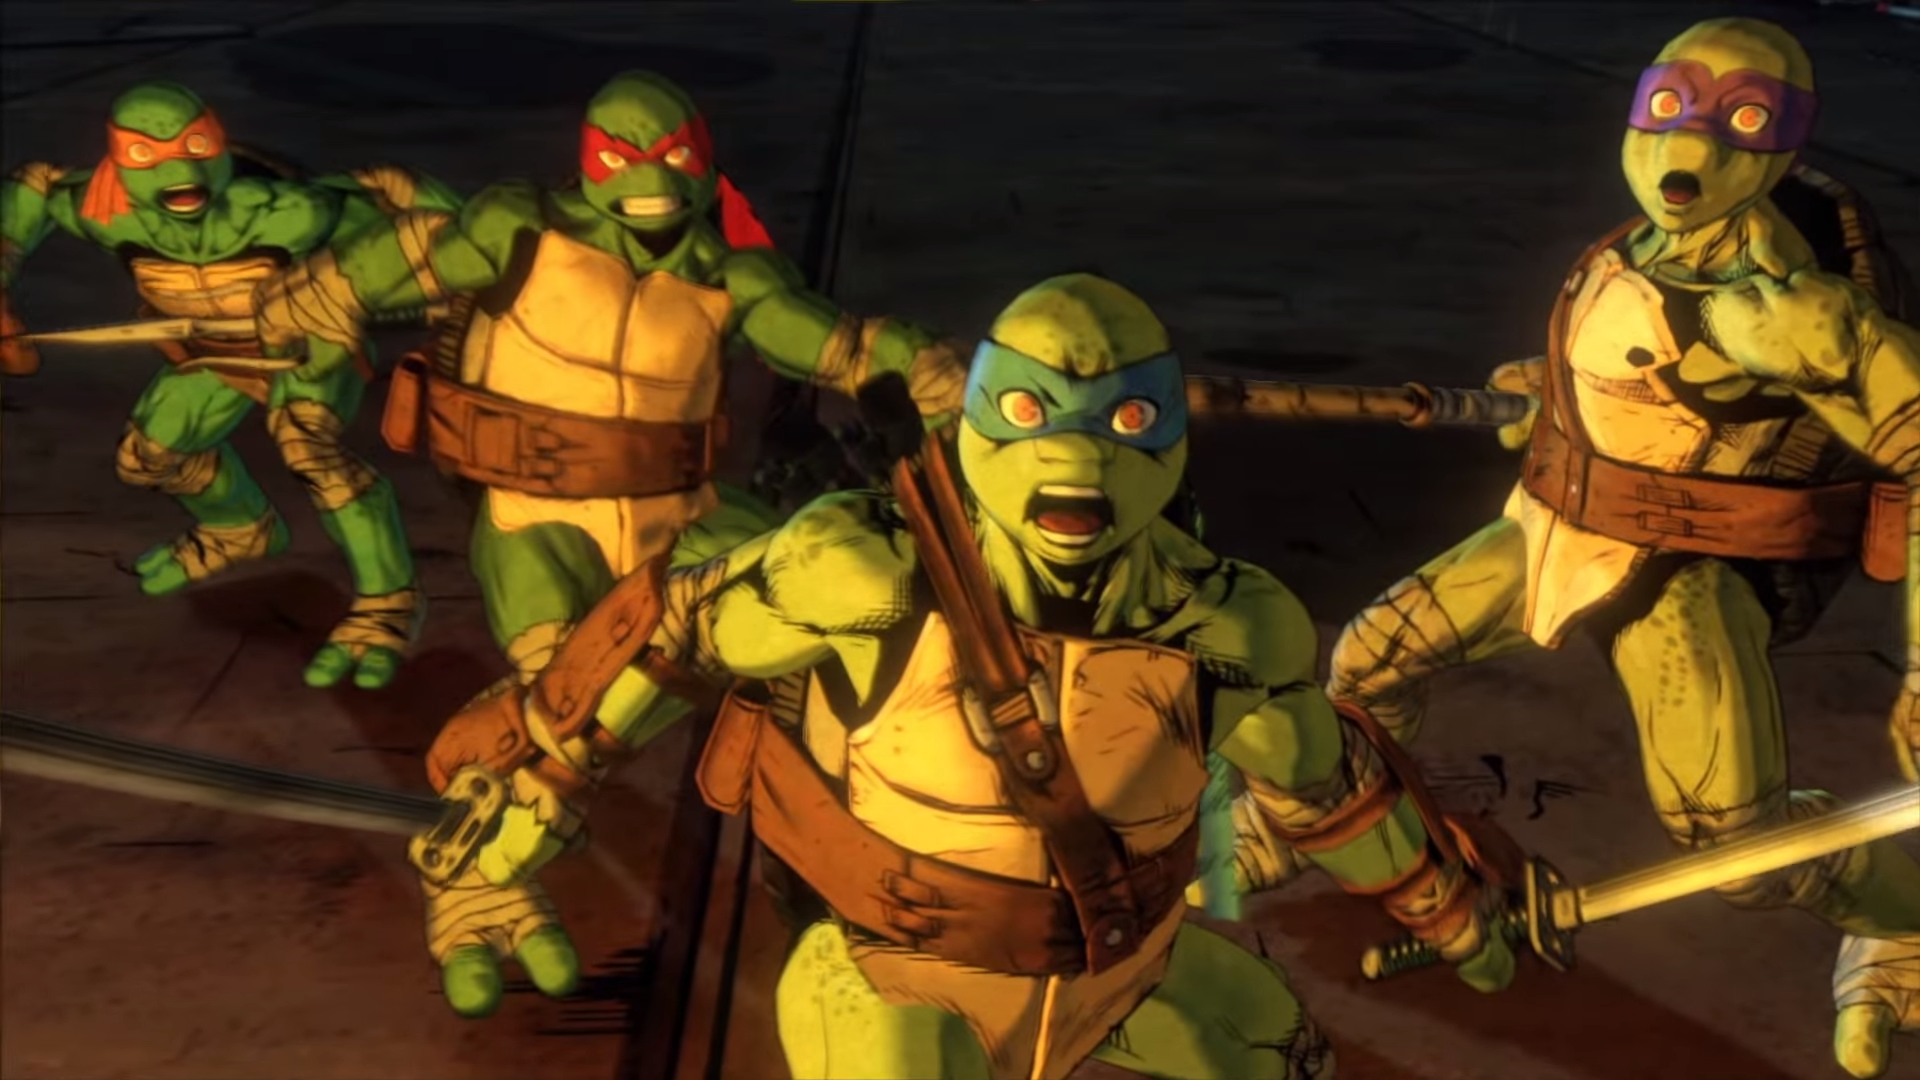 art - Teenage Mutant Ninja Turtles: Mutants in Manhattan